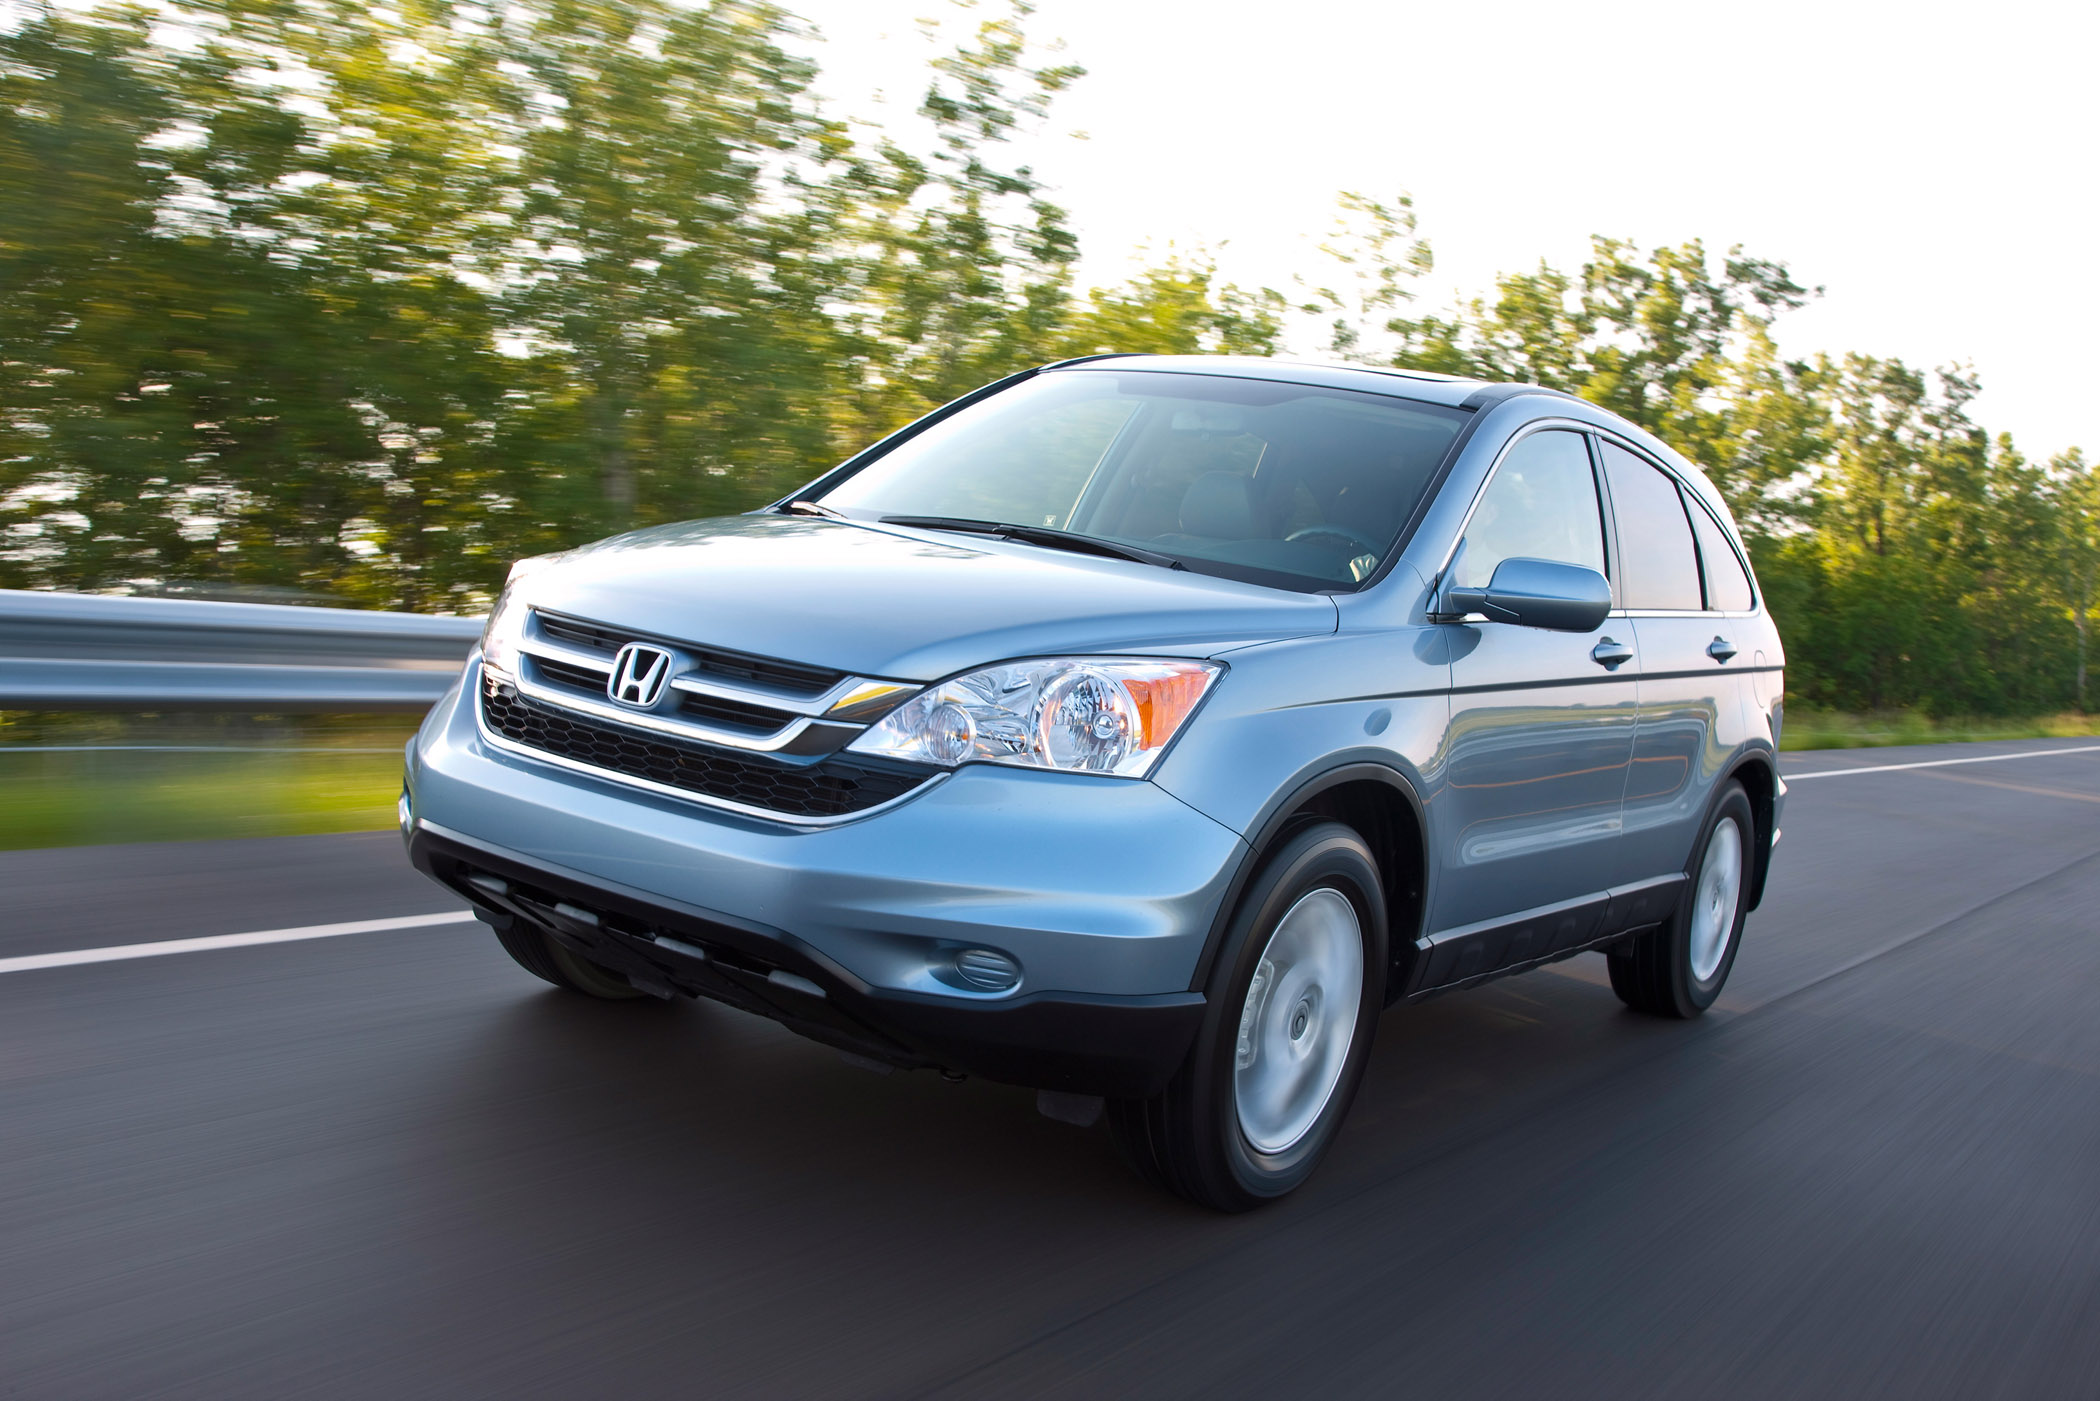 Manufacturer photo: The 2011 Honda CR-V is a versatile and accommodating crossover SUV package with space for up to five passengers and a versatile cargo area for utility